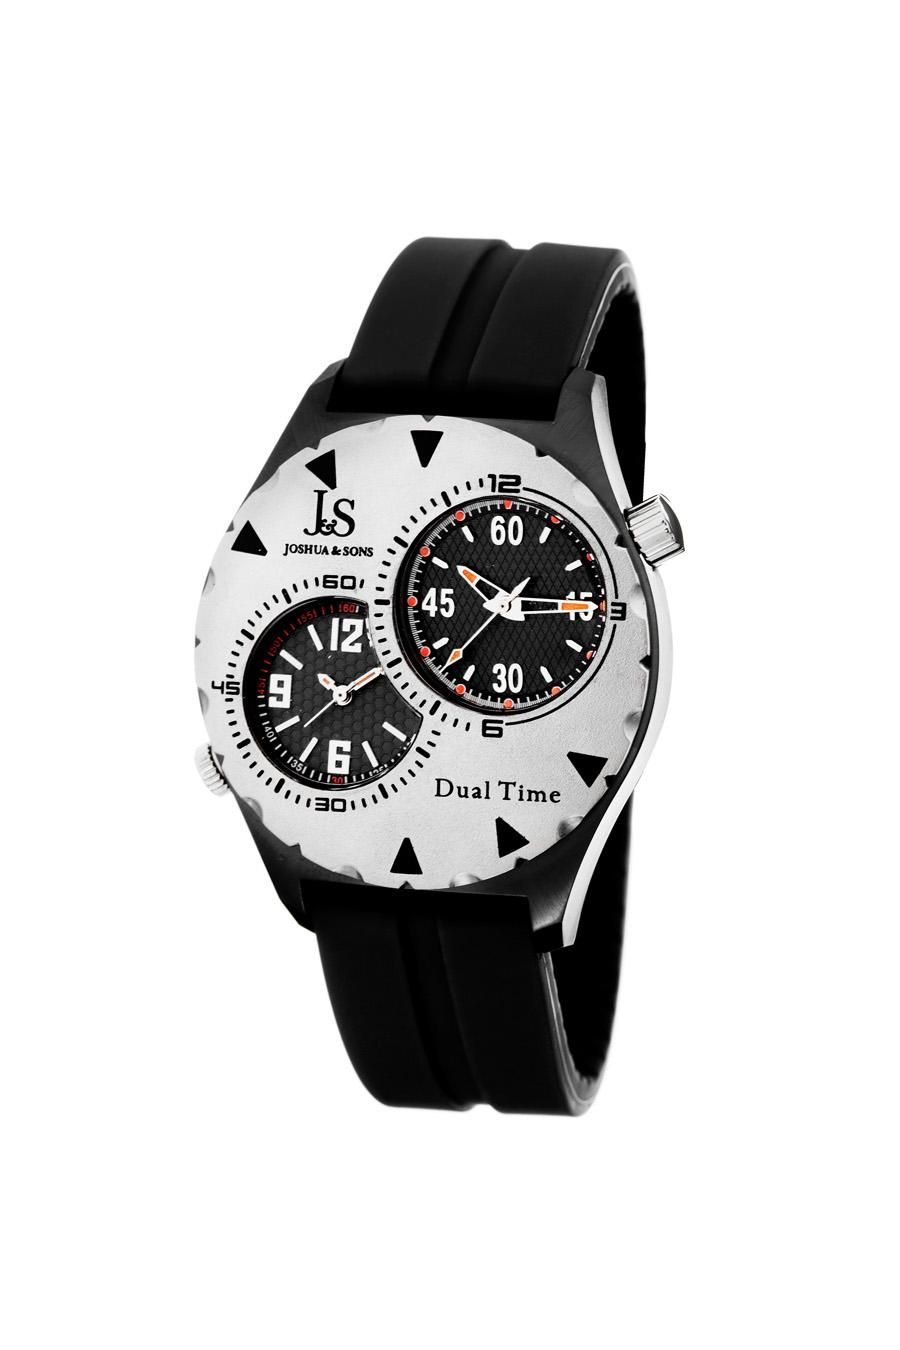 Joshua & Sons Dual Time Quartz Watch